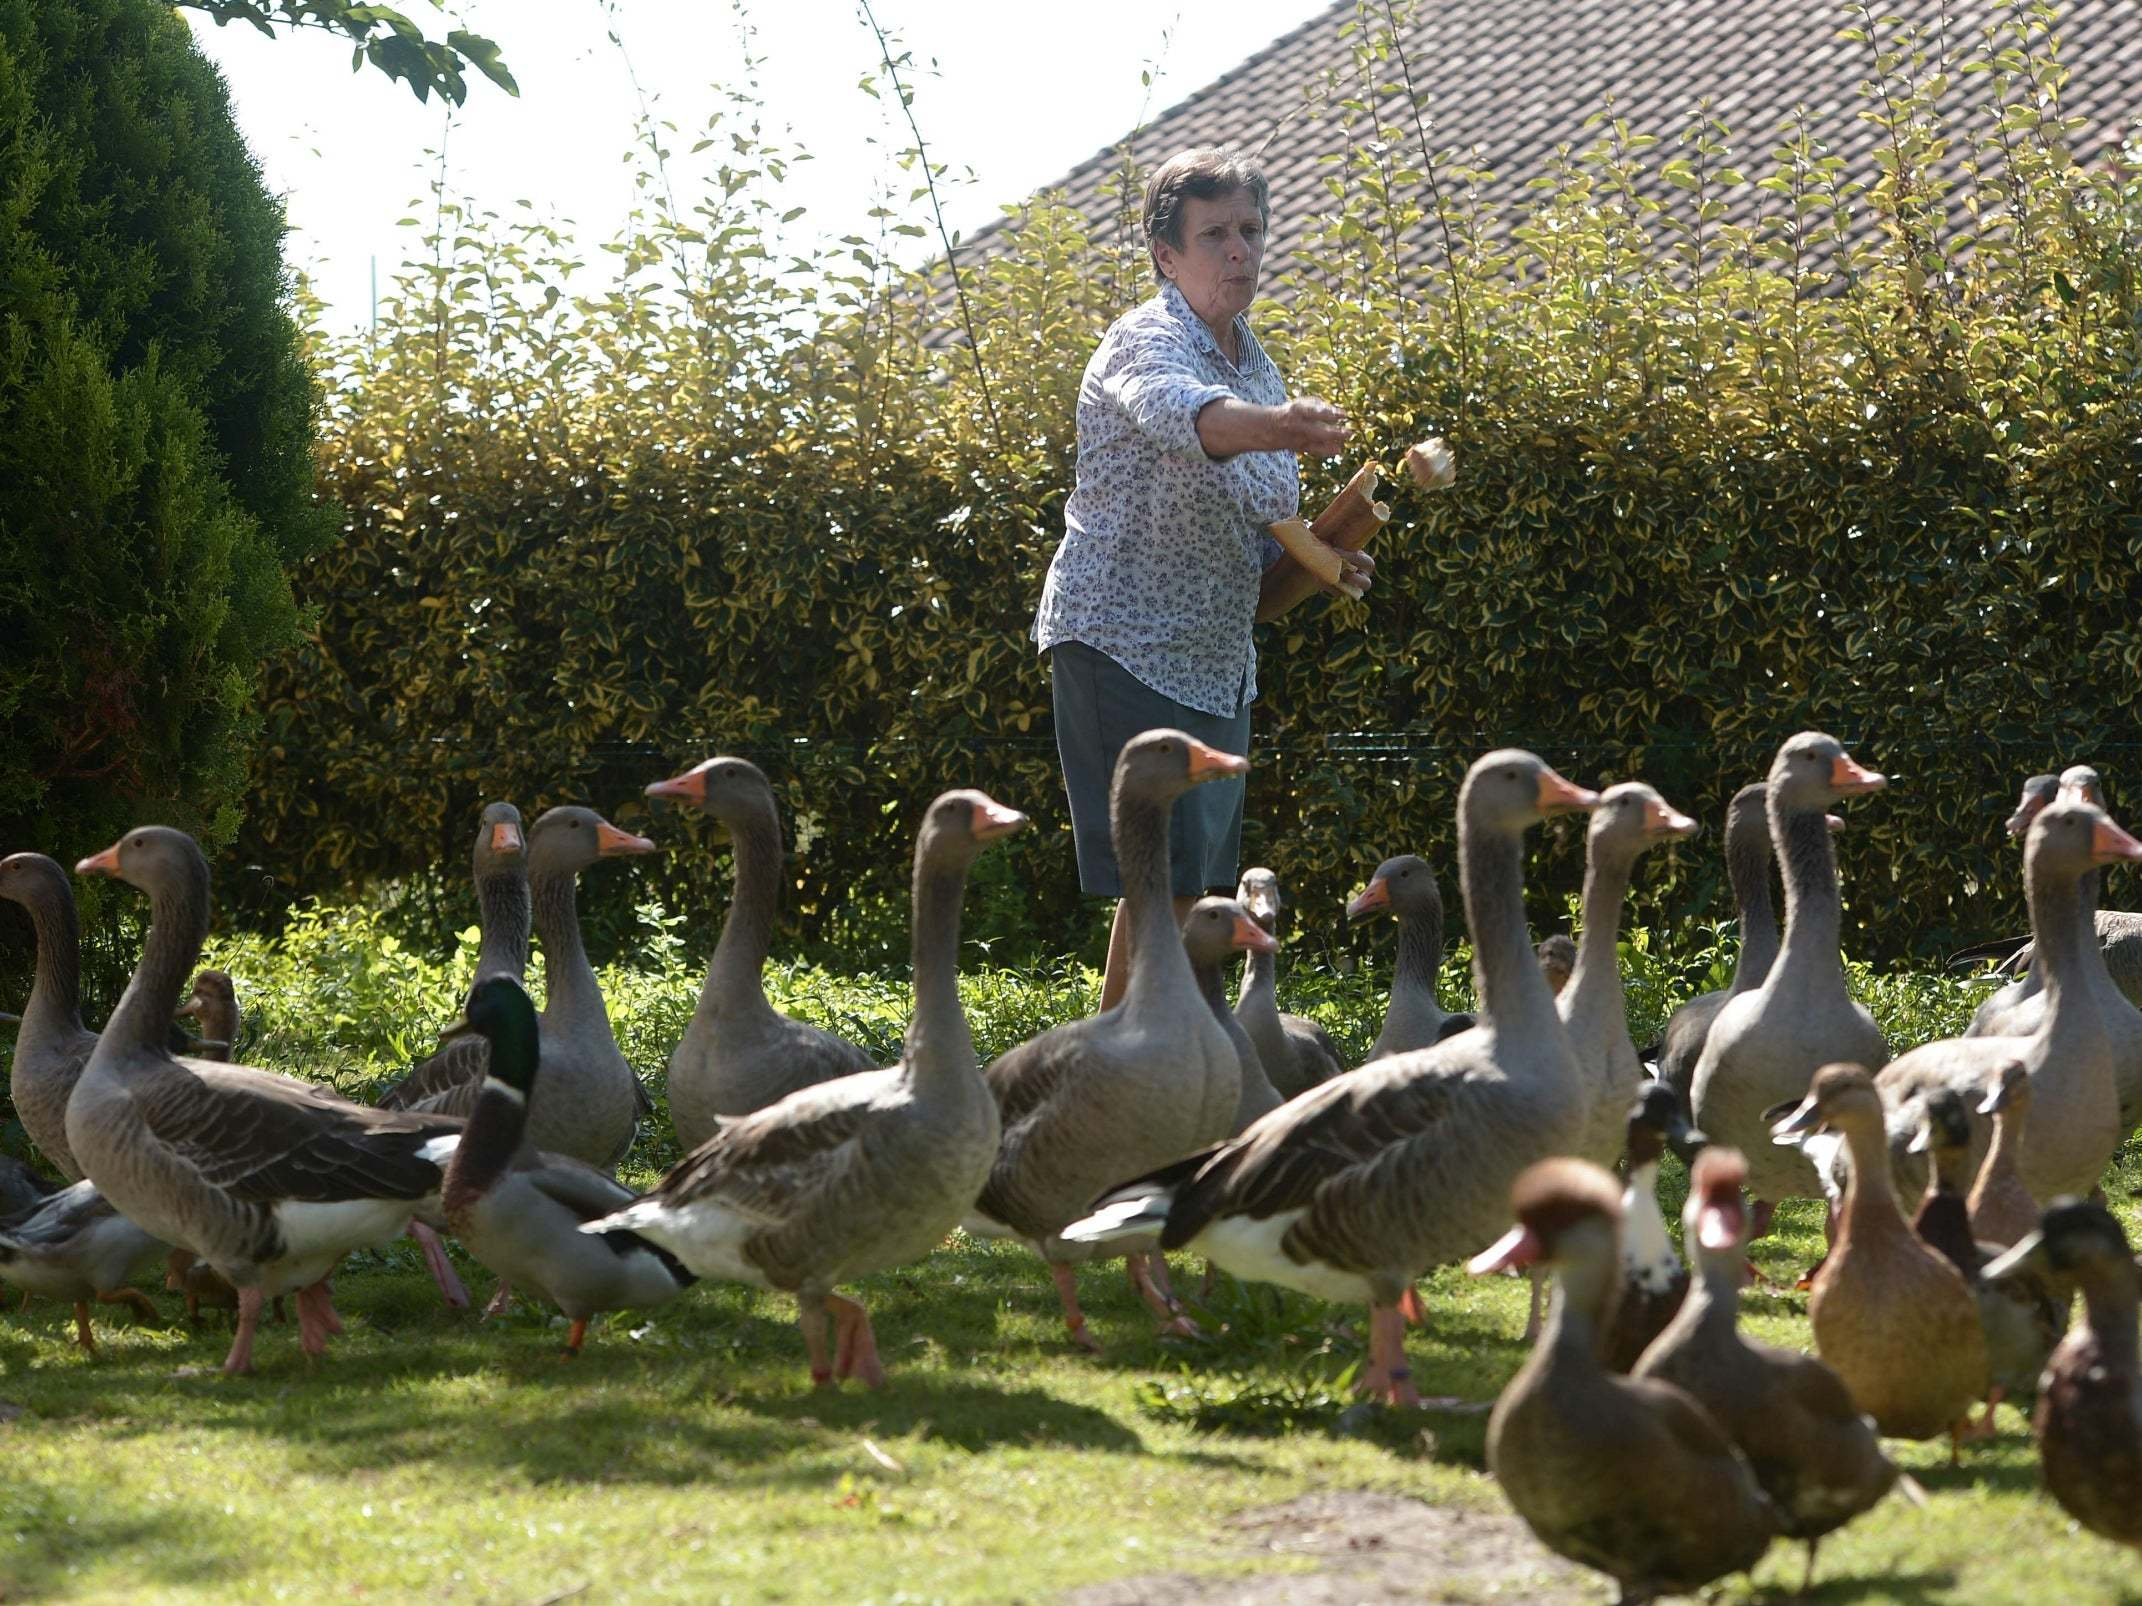 Ducks win court case over loud quacking in French countryside